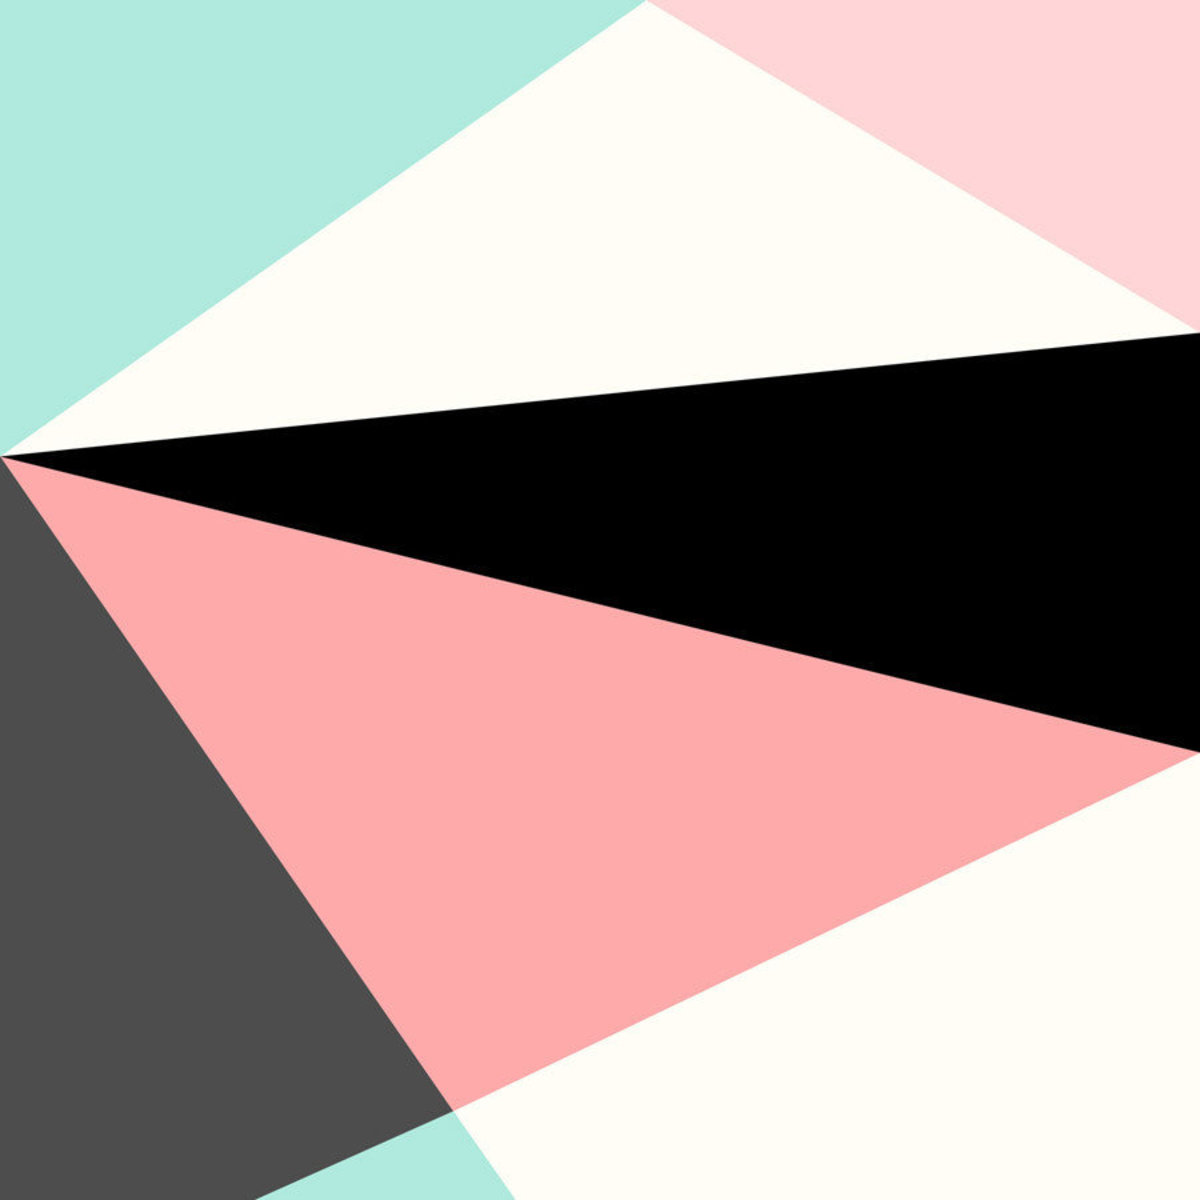 geometric design with pastel tones, simplistic lines and bold color blocks Additional Thumbnail